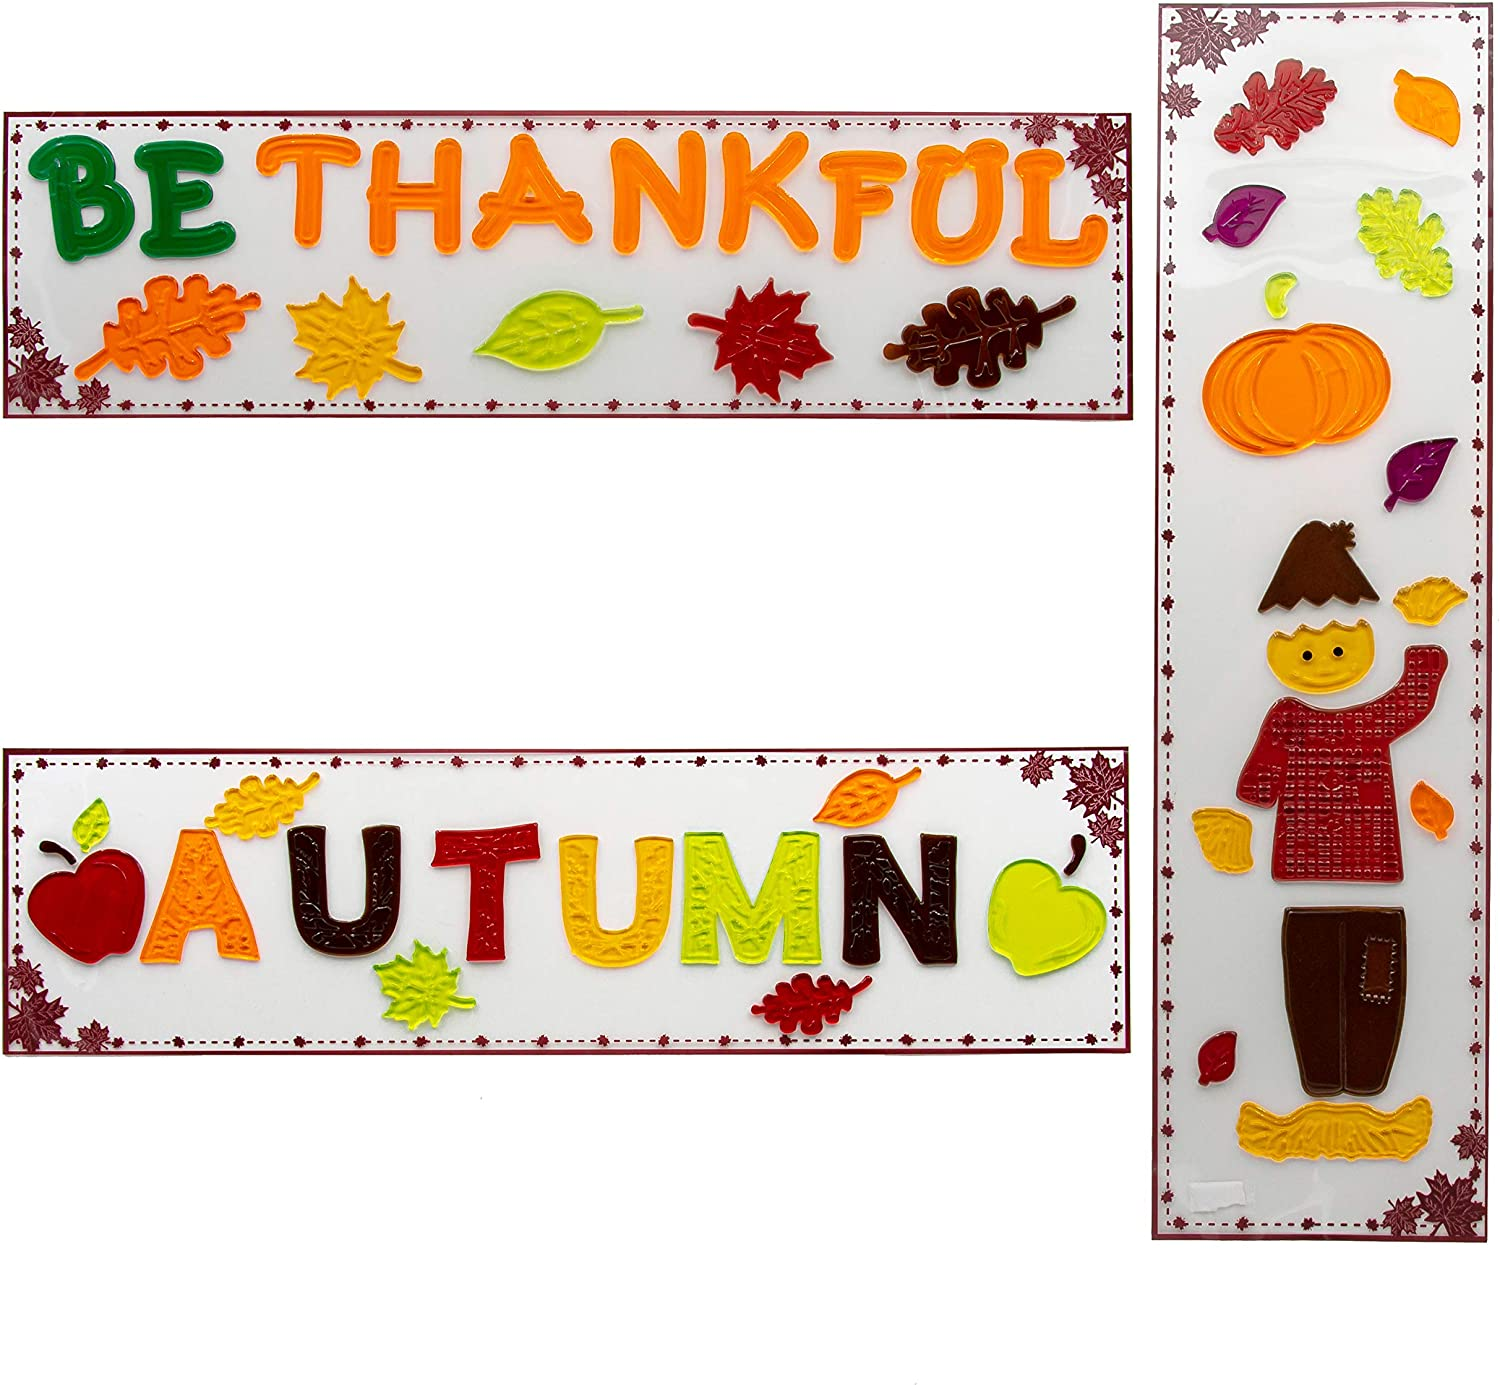 """B-THERE Bundle of 3 Autumn Harvest Fall Decorations 5.5"""" x 21"""" Window Gel Clings, Thanksgiving Decorations W/Pumpkins, Scarecrow, Oak Maple Leaves and Apples"""